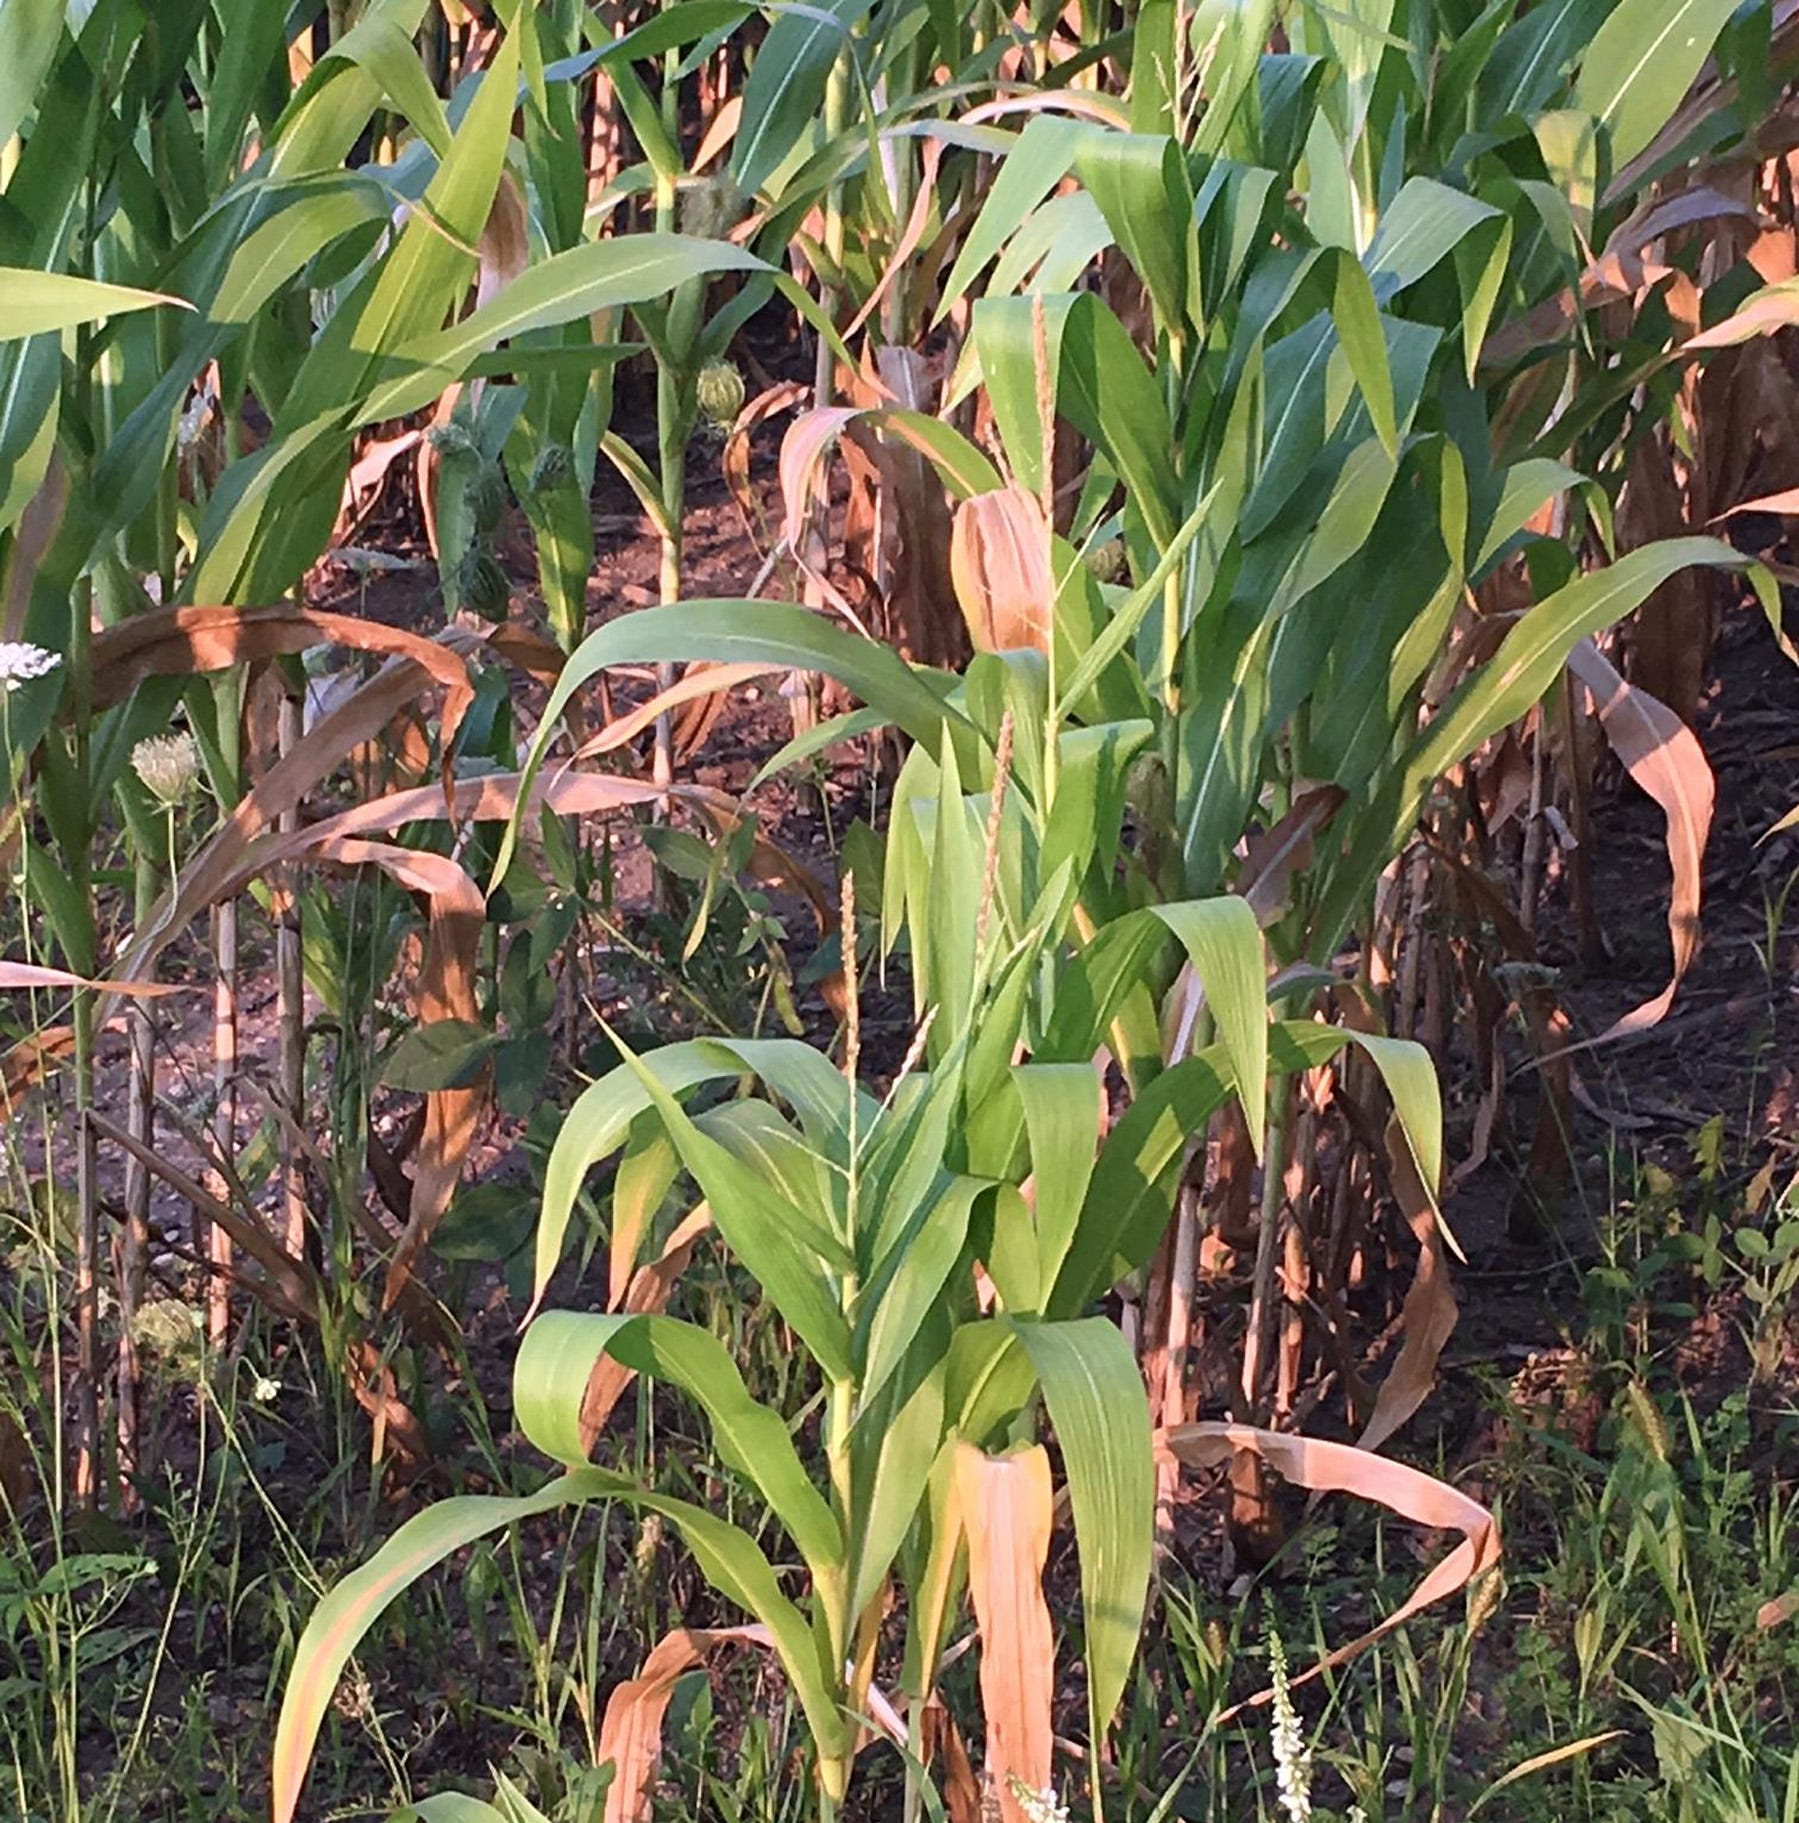 Wisconsin crops endure another week of hot, muggy weather with isolated showers